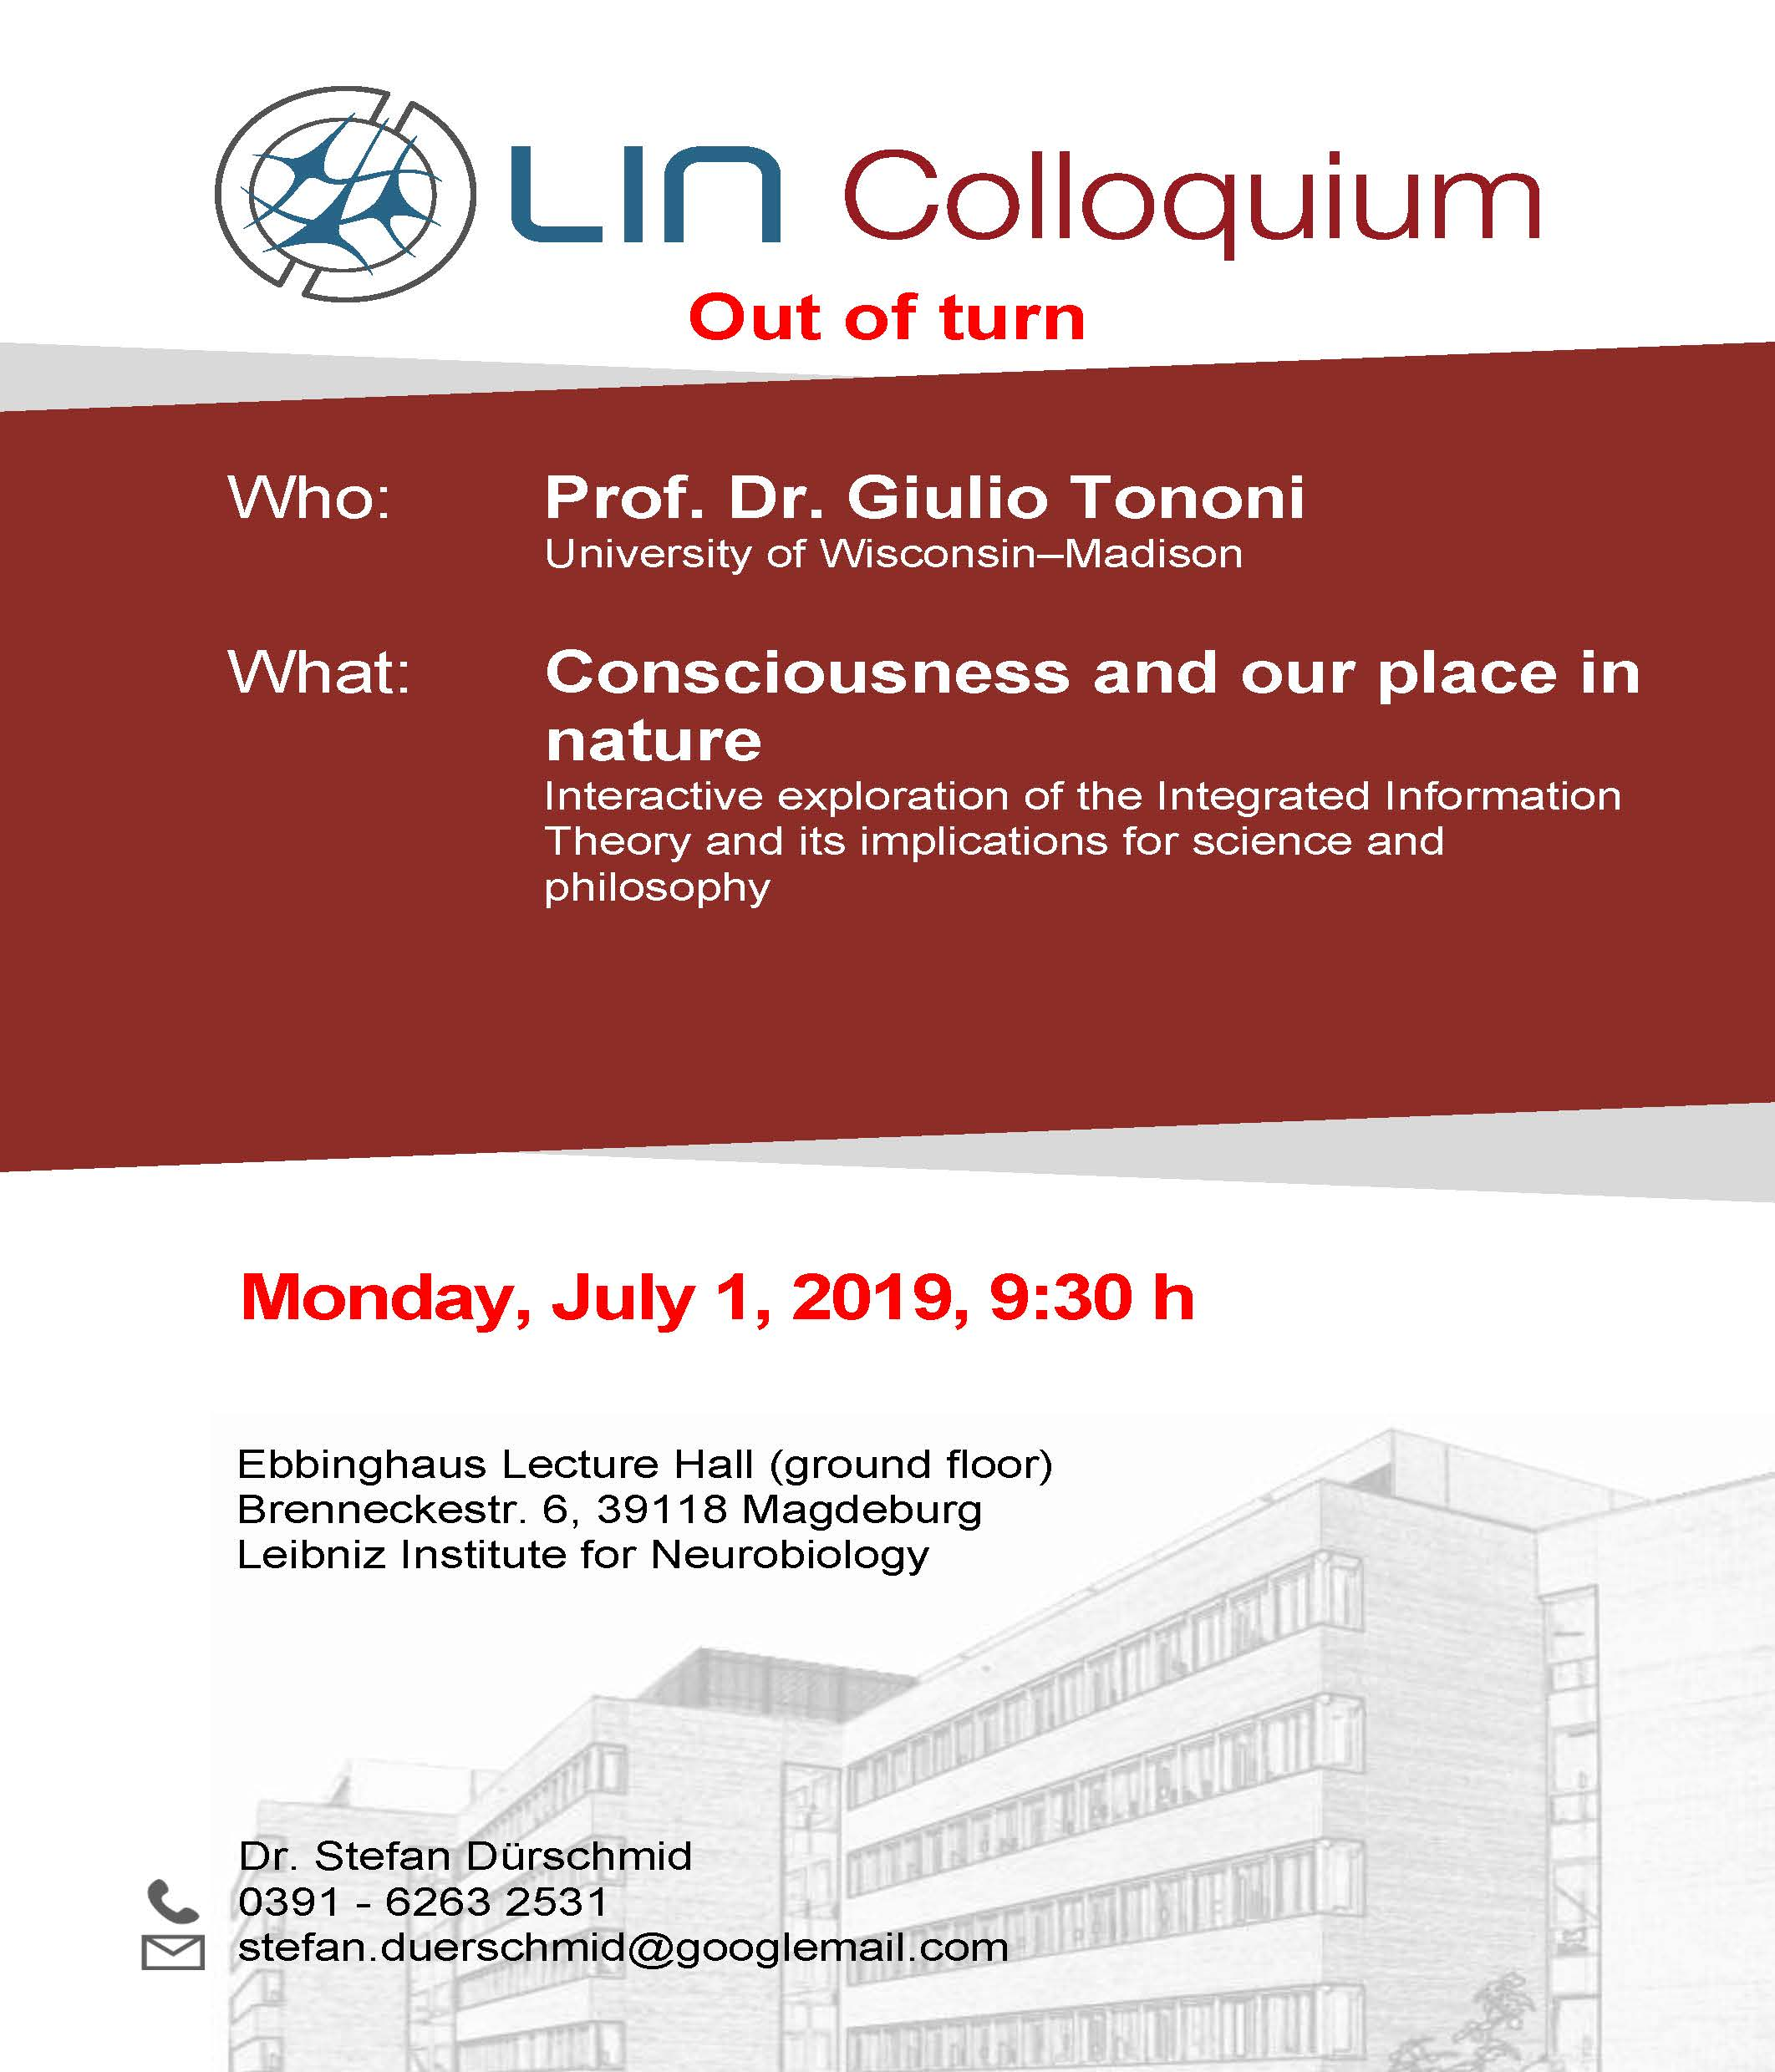 LIN Colloquium: Consciousness and our place in nature